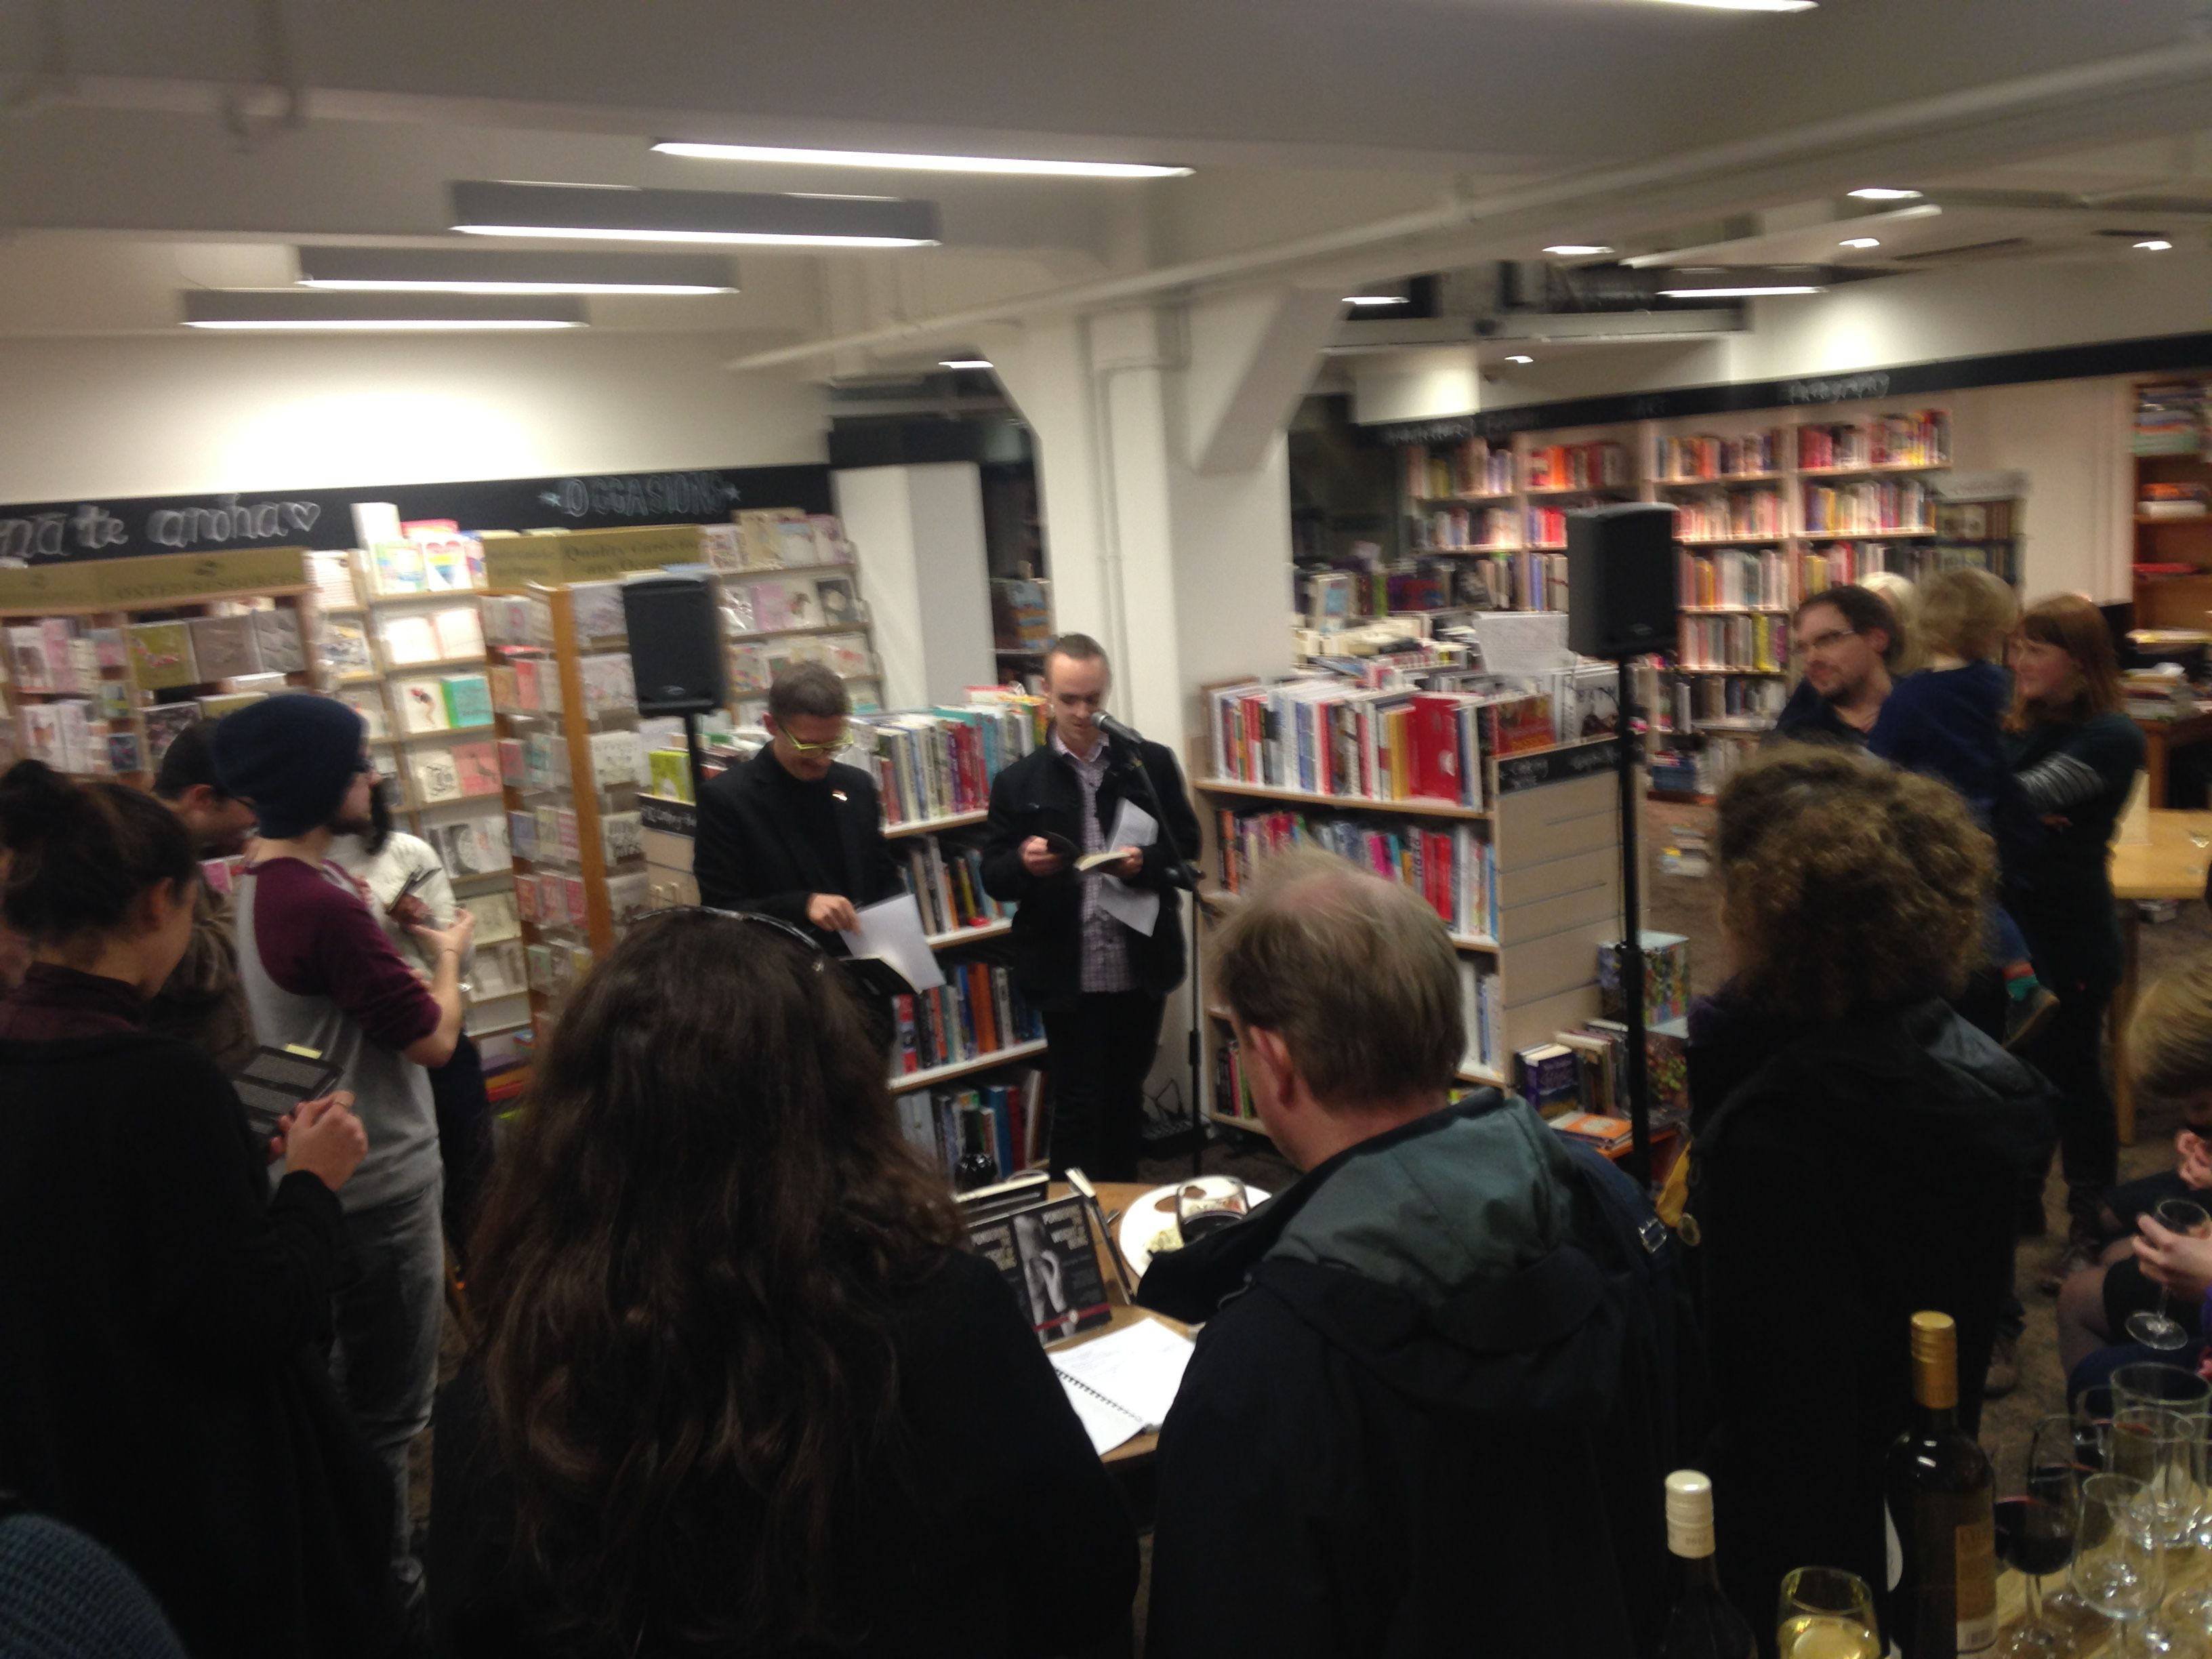 The new translation of Pondering the Weight of Being launched at Vic Books Kelburn 30th July, 2015.